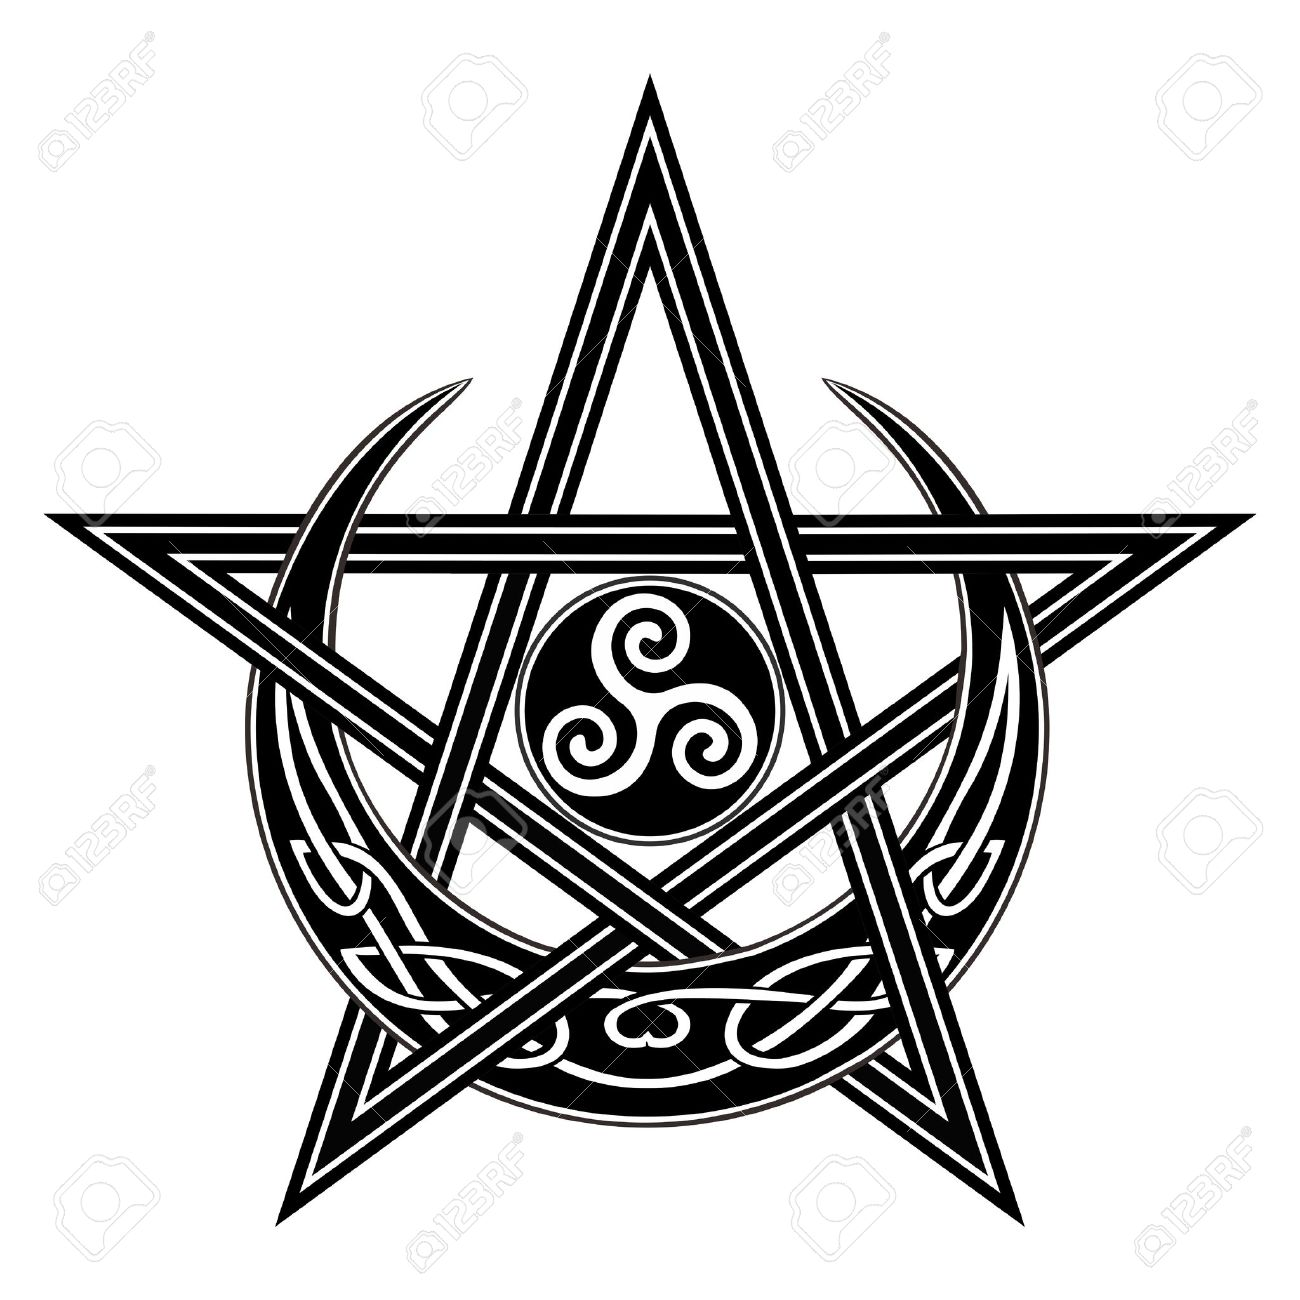 2036 Wicca Cliparts Stock Vector And Royalty Free Wicca Illustrations